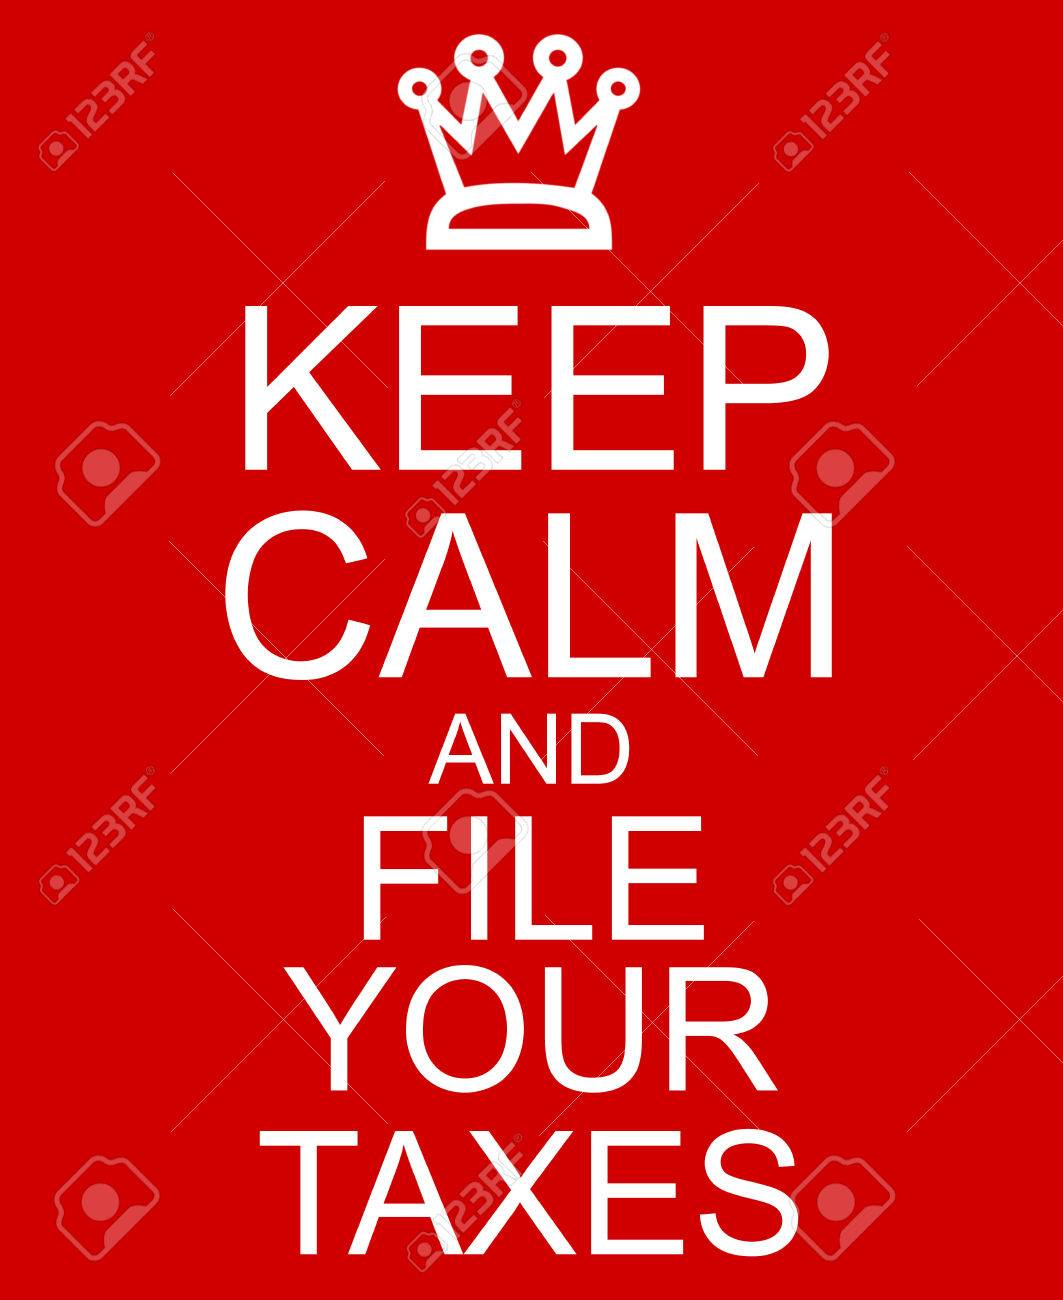 keep calm and file your taxes red sign with a crown making a stock